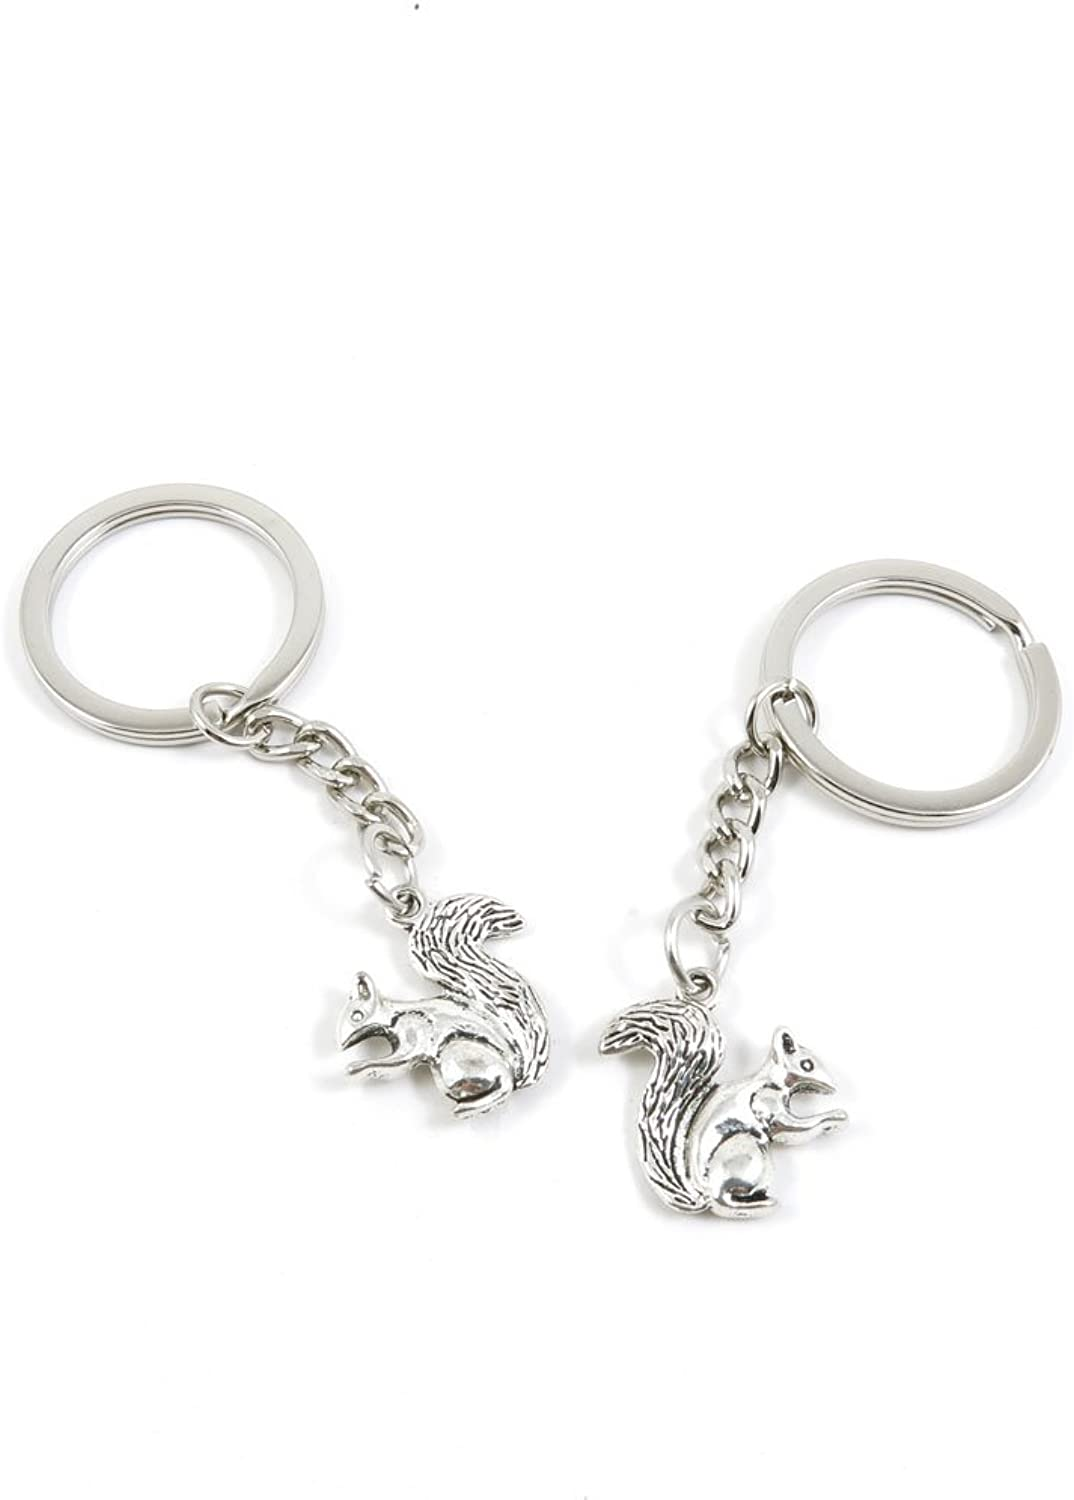 180 Pieces Fashion Jewelry Keyring Keychain Door Car Key Tag Ring Chain Supplier Supply Wholesale Bulk Lots M6IN8 Squirrel